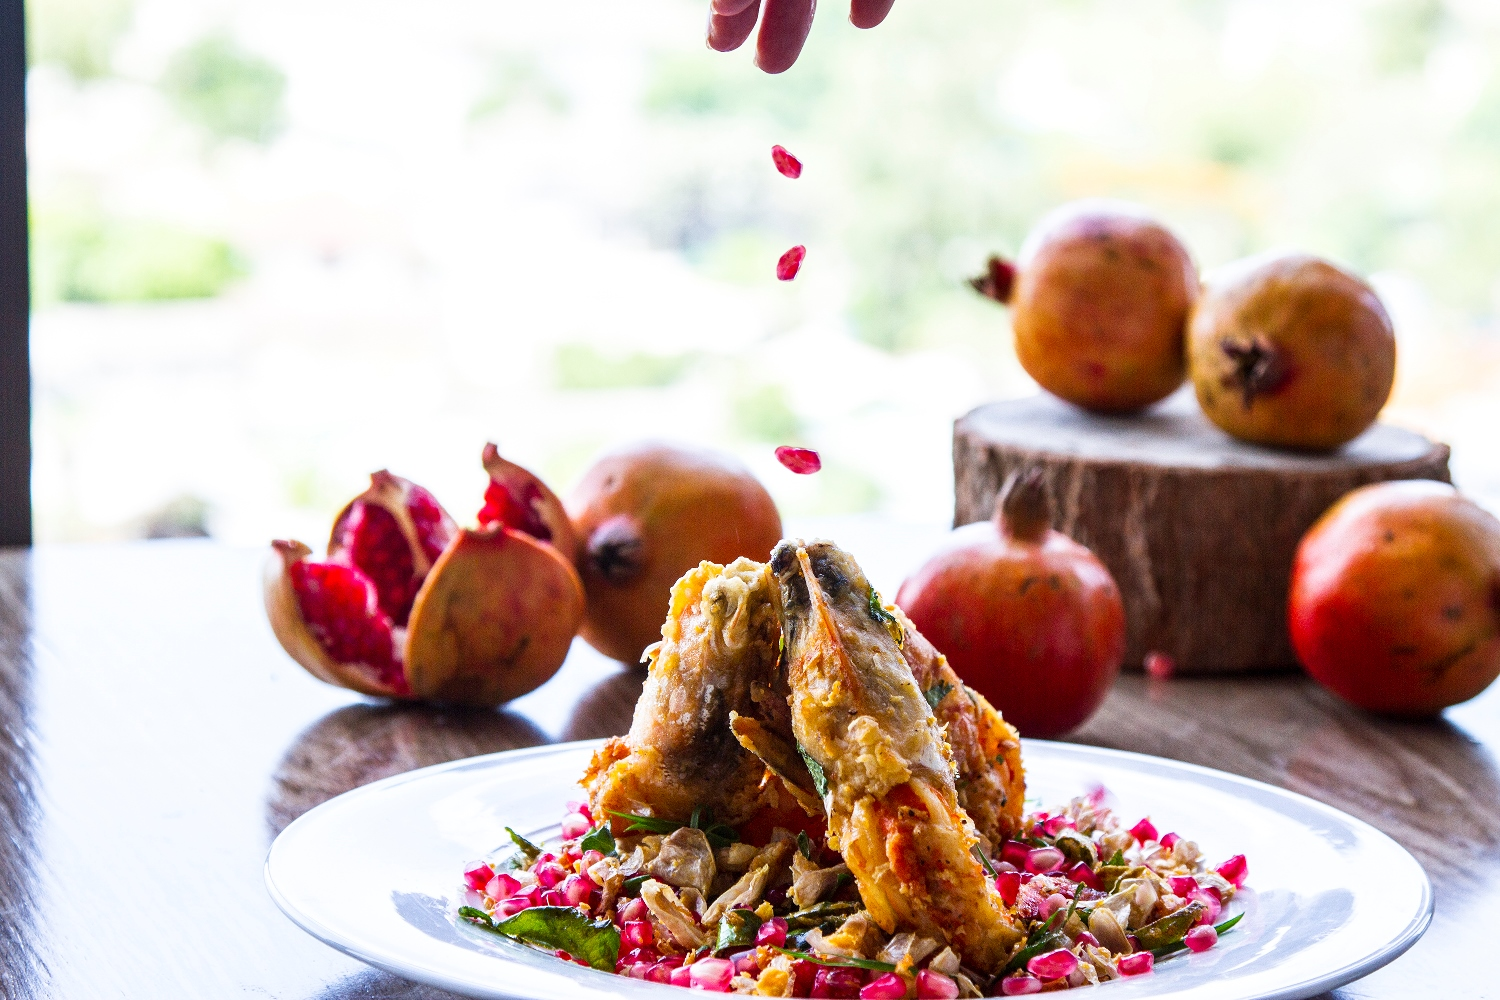 Wok-Fried King Prawns with Pomegranate